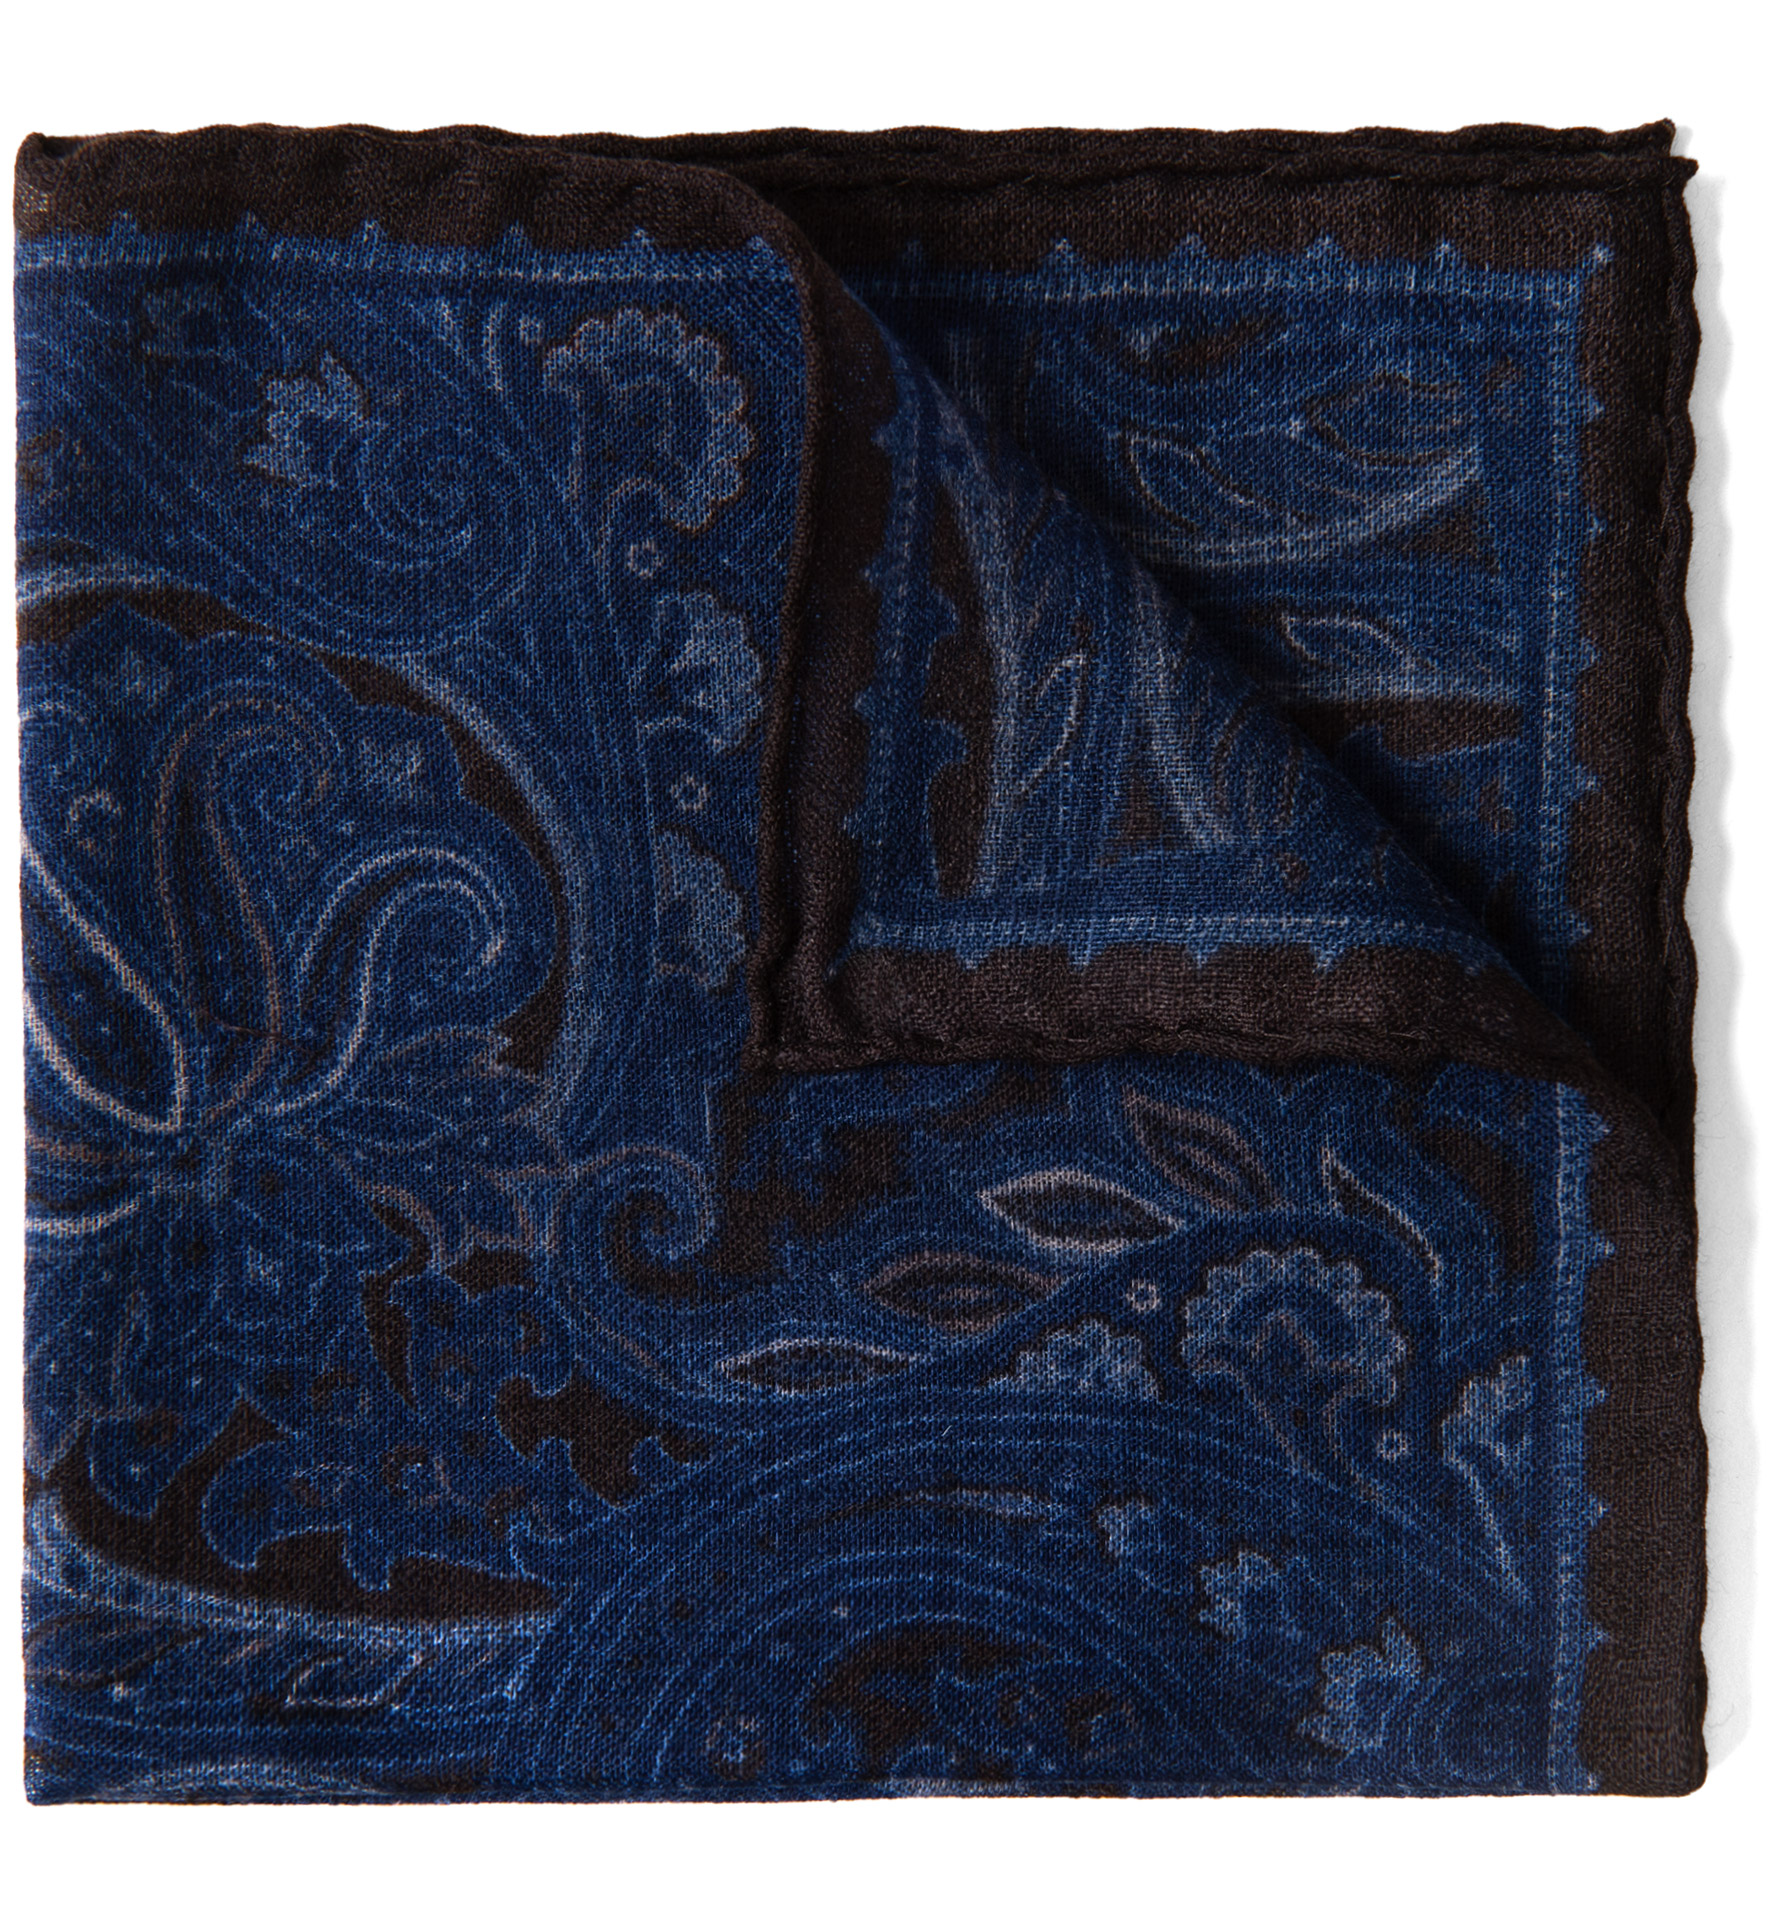 Zoom Image of Navy and Brown Paisley Gauze Wool Pocket Square